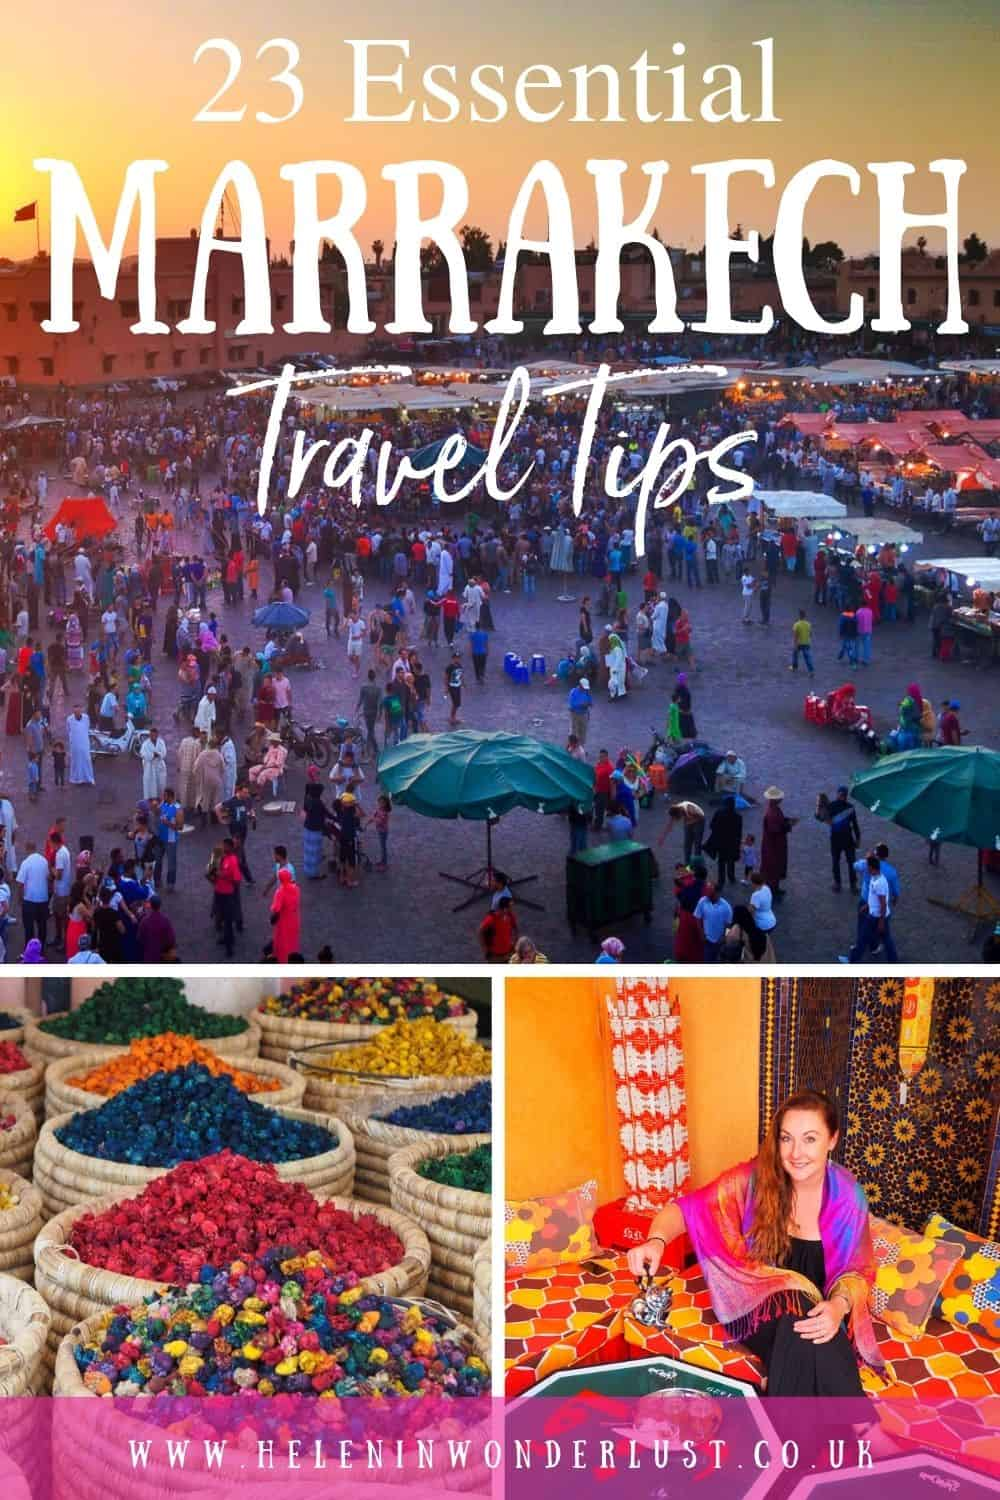 23 Essential Marrakech Travel Tips